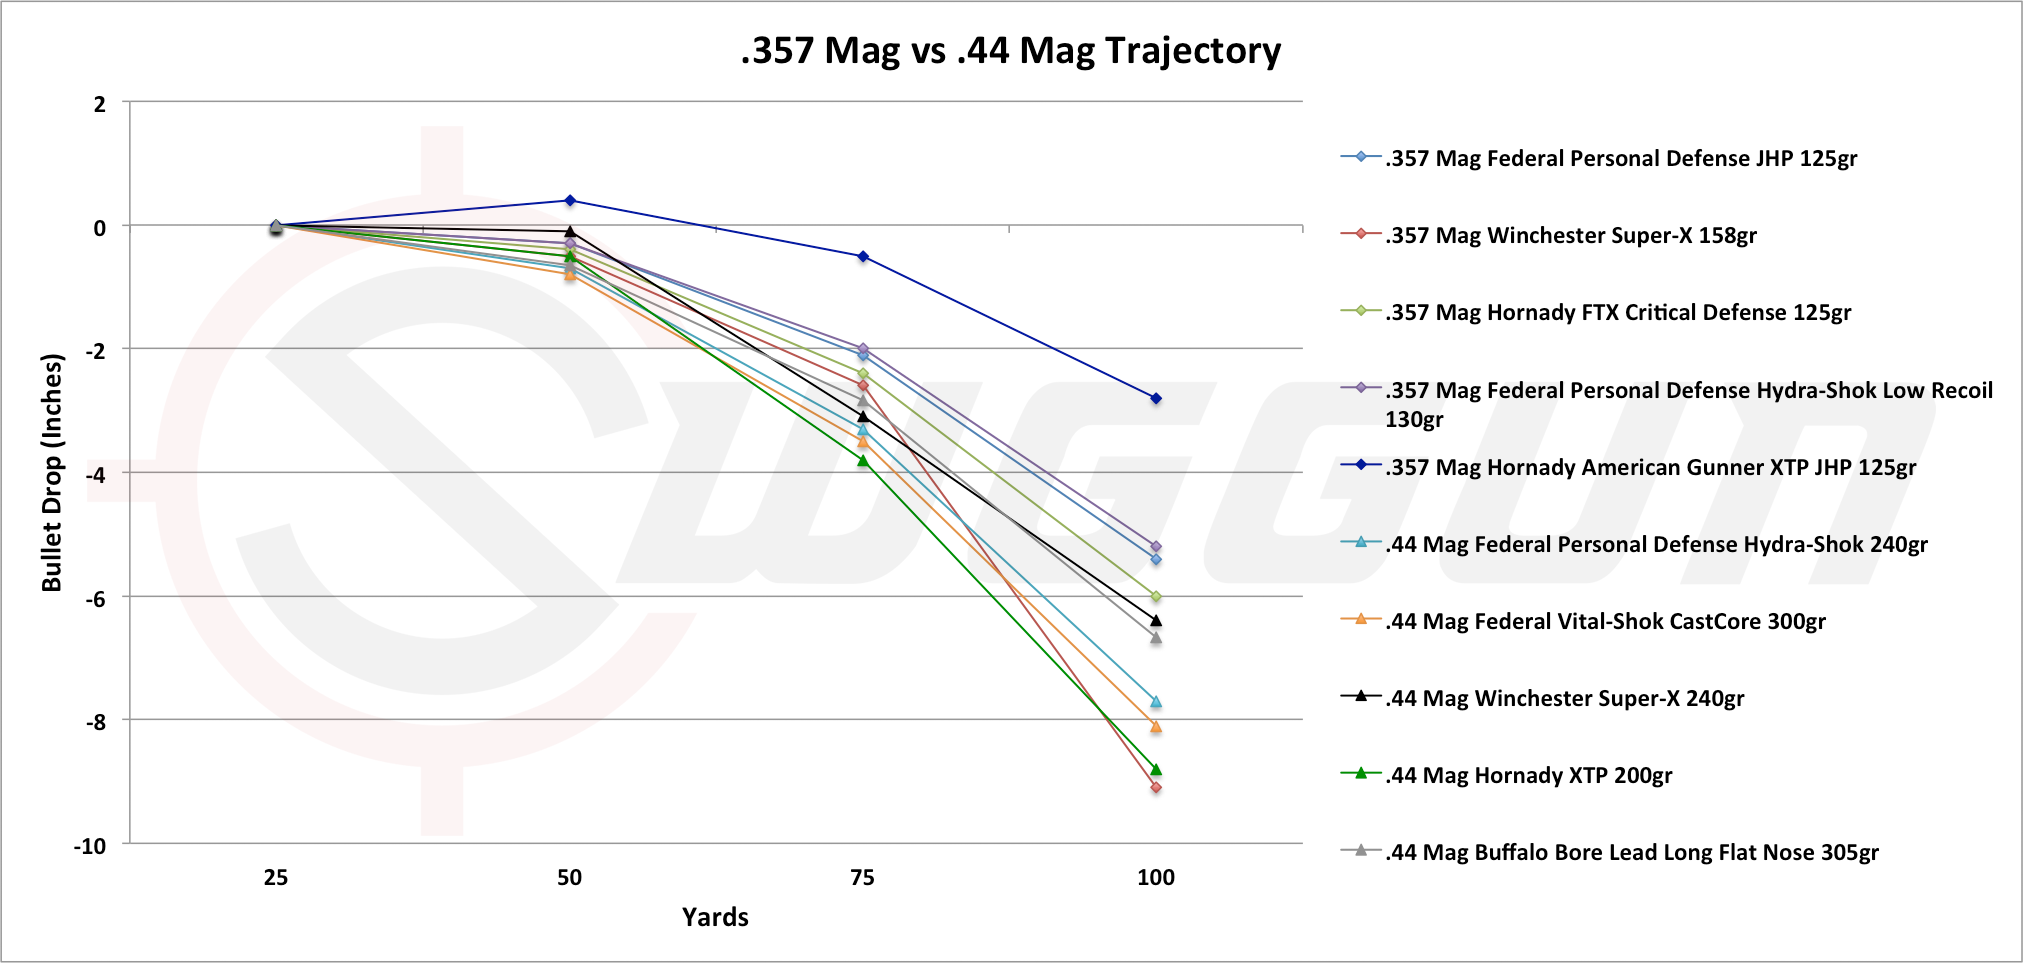 Trajectory Comparison Of The 44 Caliber Versus 357